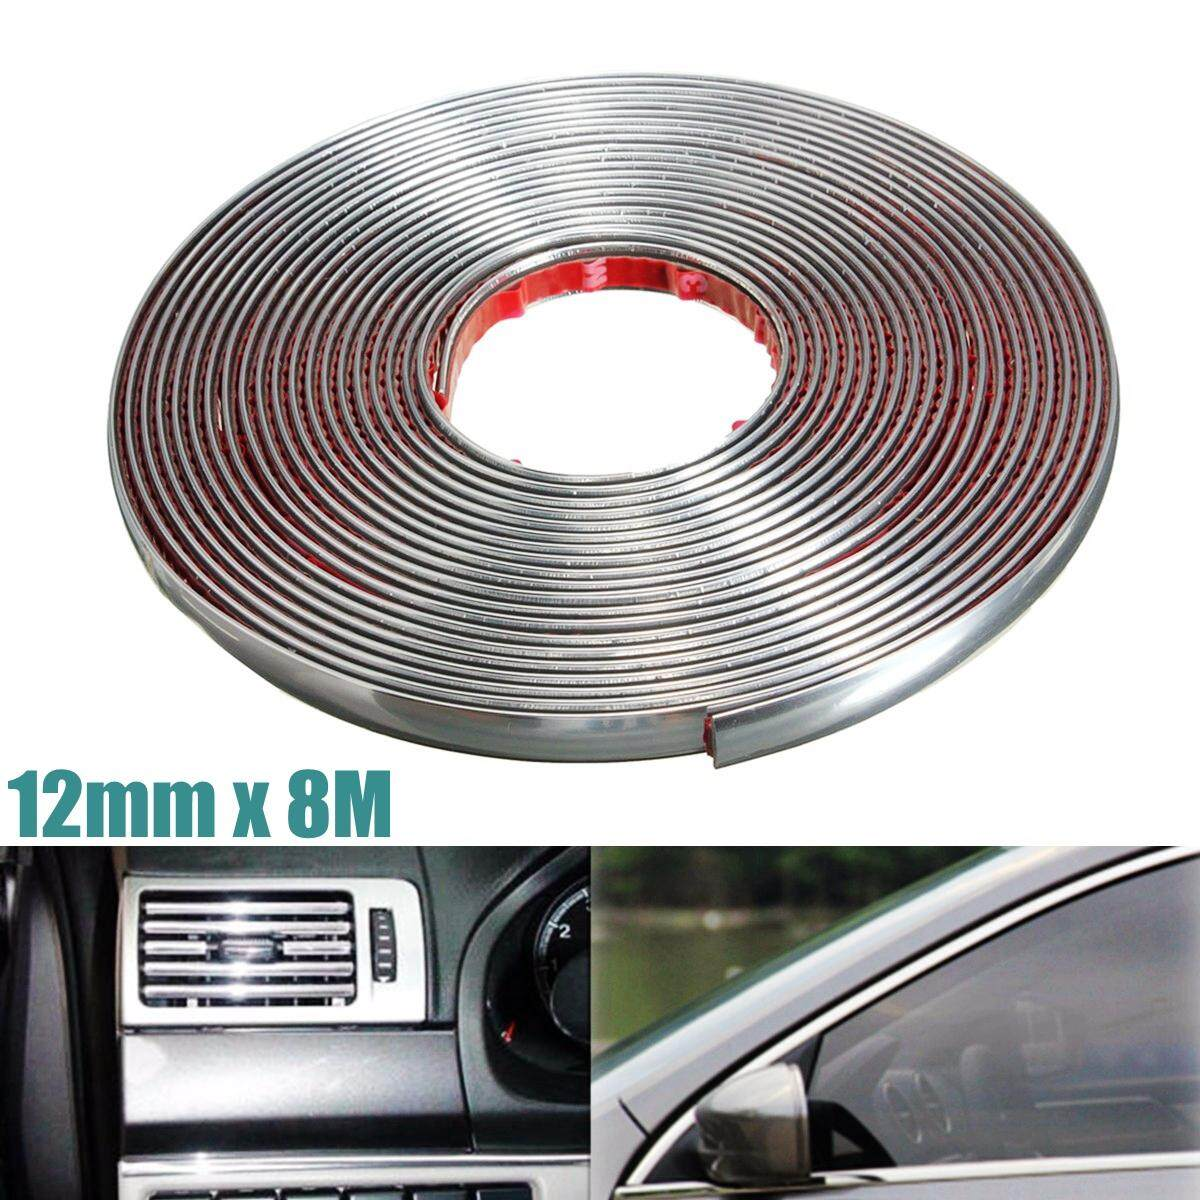 12mm X 8m(316) Car Chrome Styling Moulding Adhesive Trim Strip Rubbing Durable By Audew.